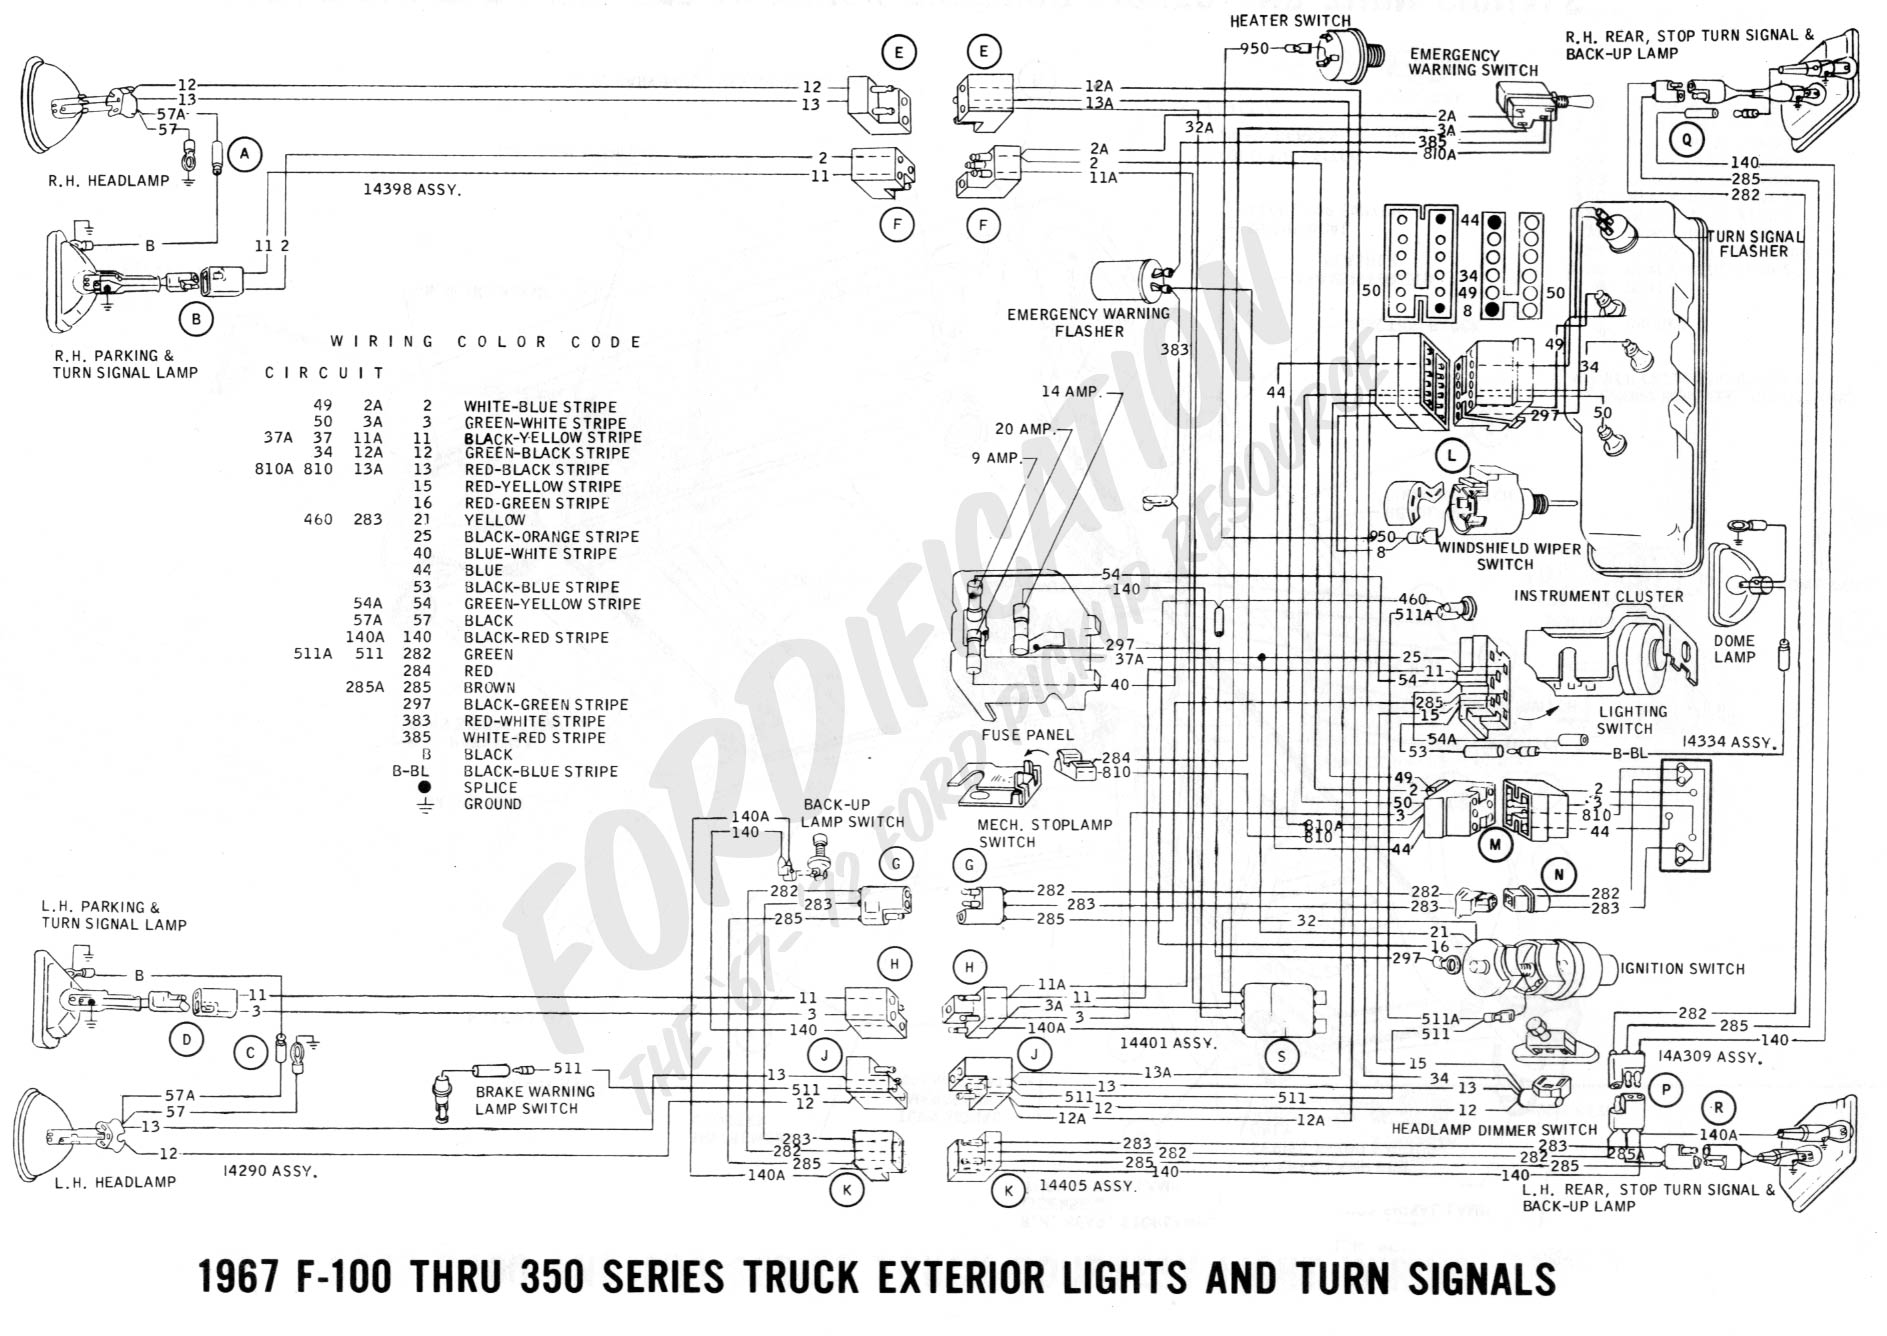 1966 Lincoln Continental Air Conditioning Wiring